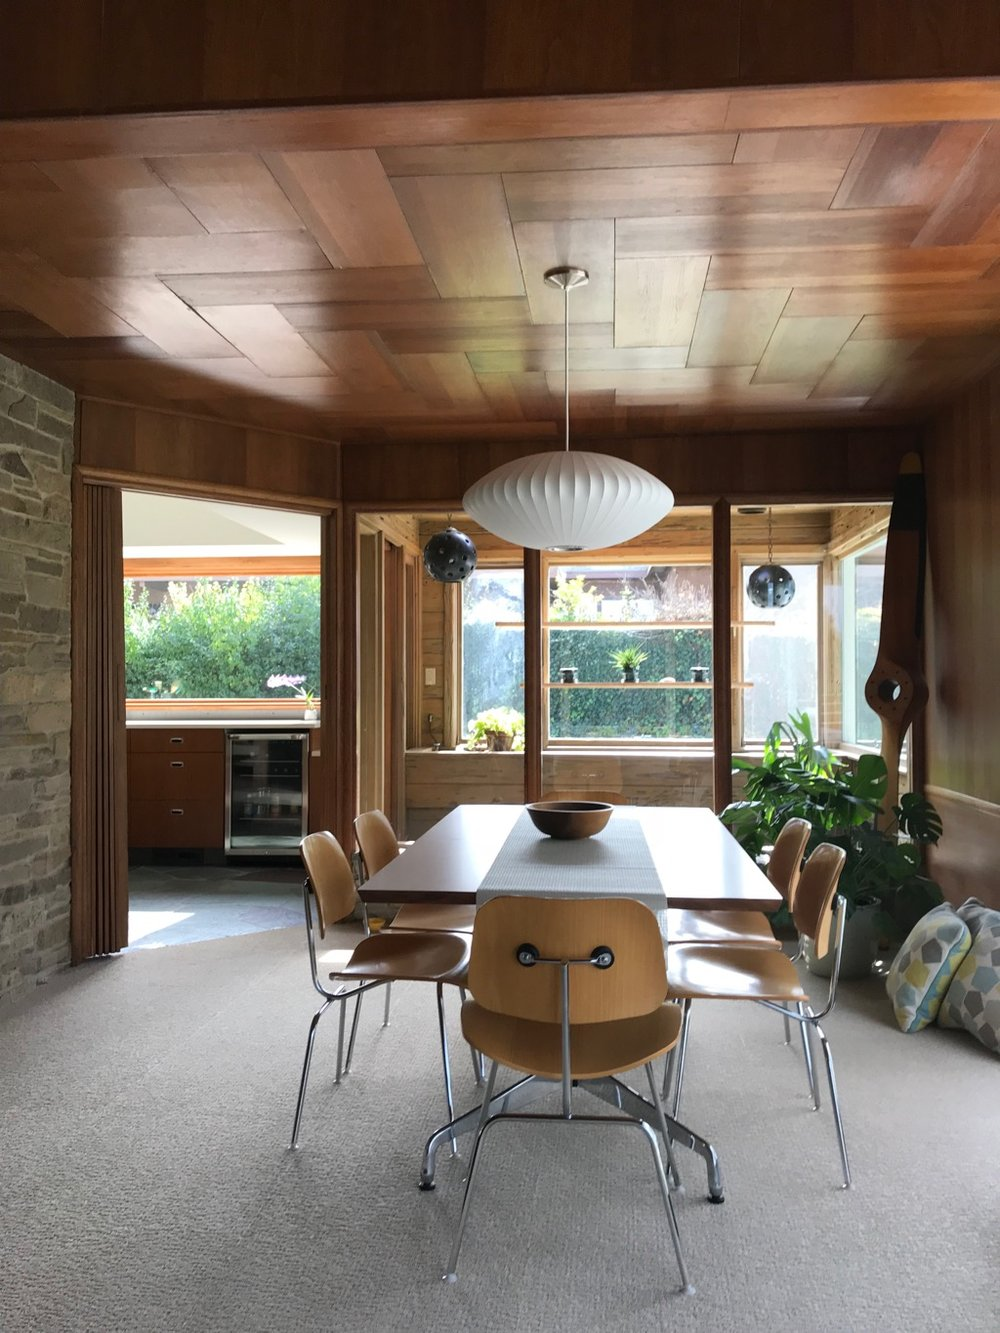 Note the wood ceiling with a herringbone pattern.